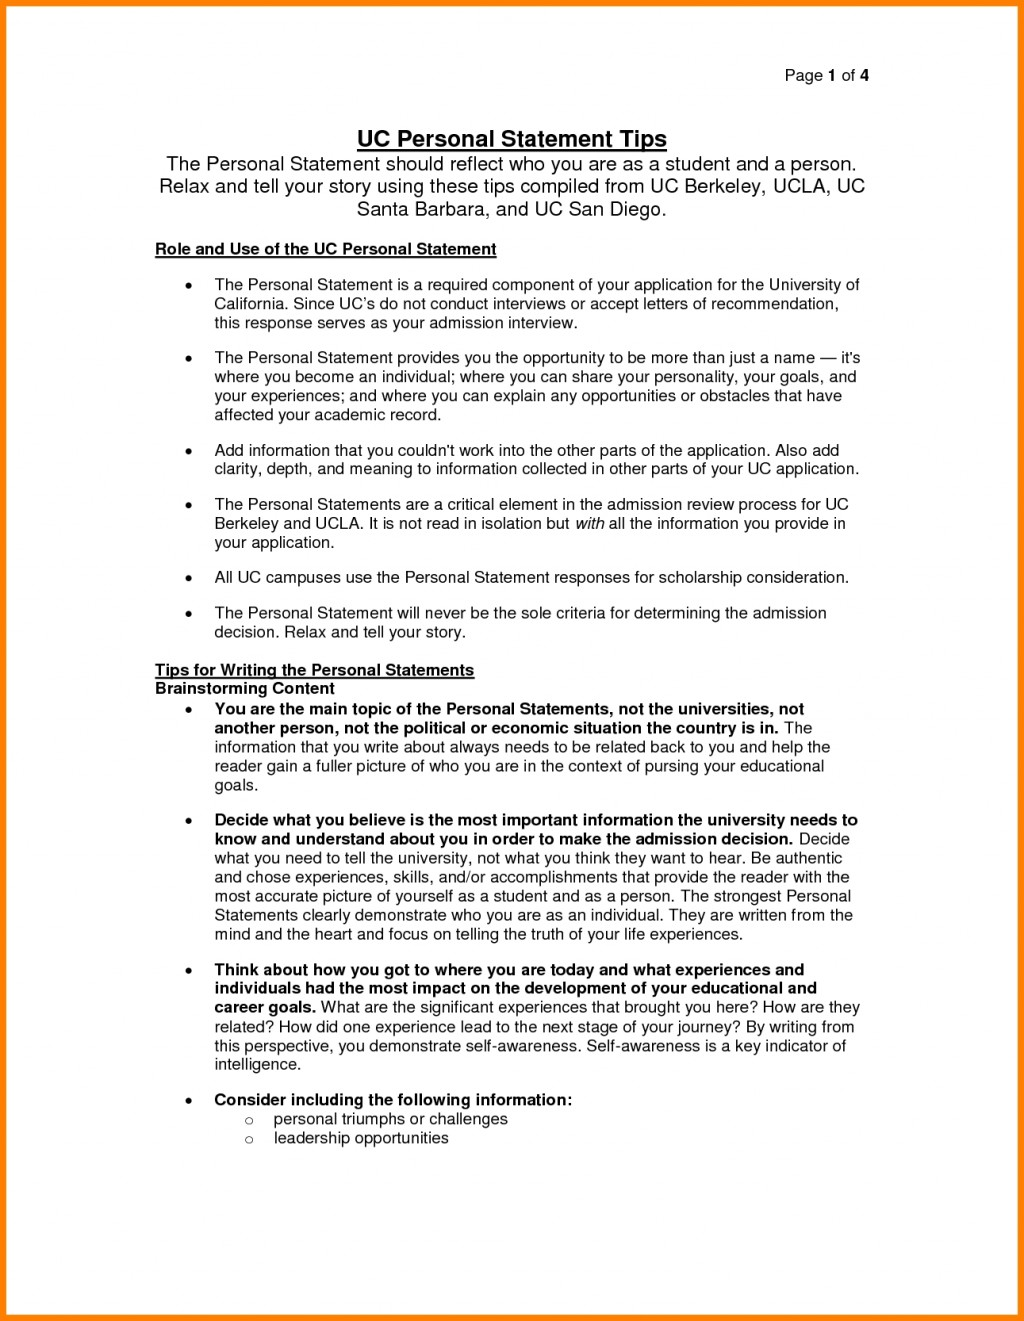 002 Uc Essay Prompts Essayss Best Personal Statement Samples Berkeley Intended For College Writing Imposing 2017 Boulder Prompt Davis Large